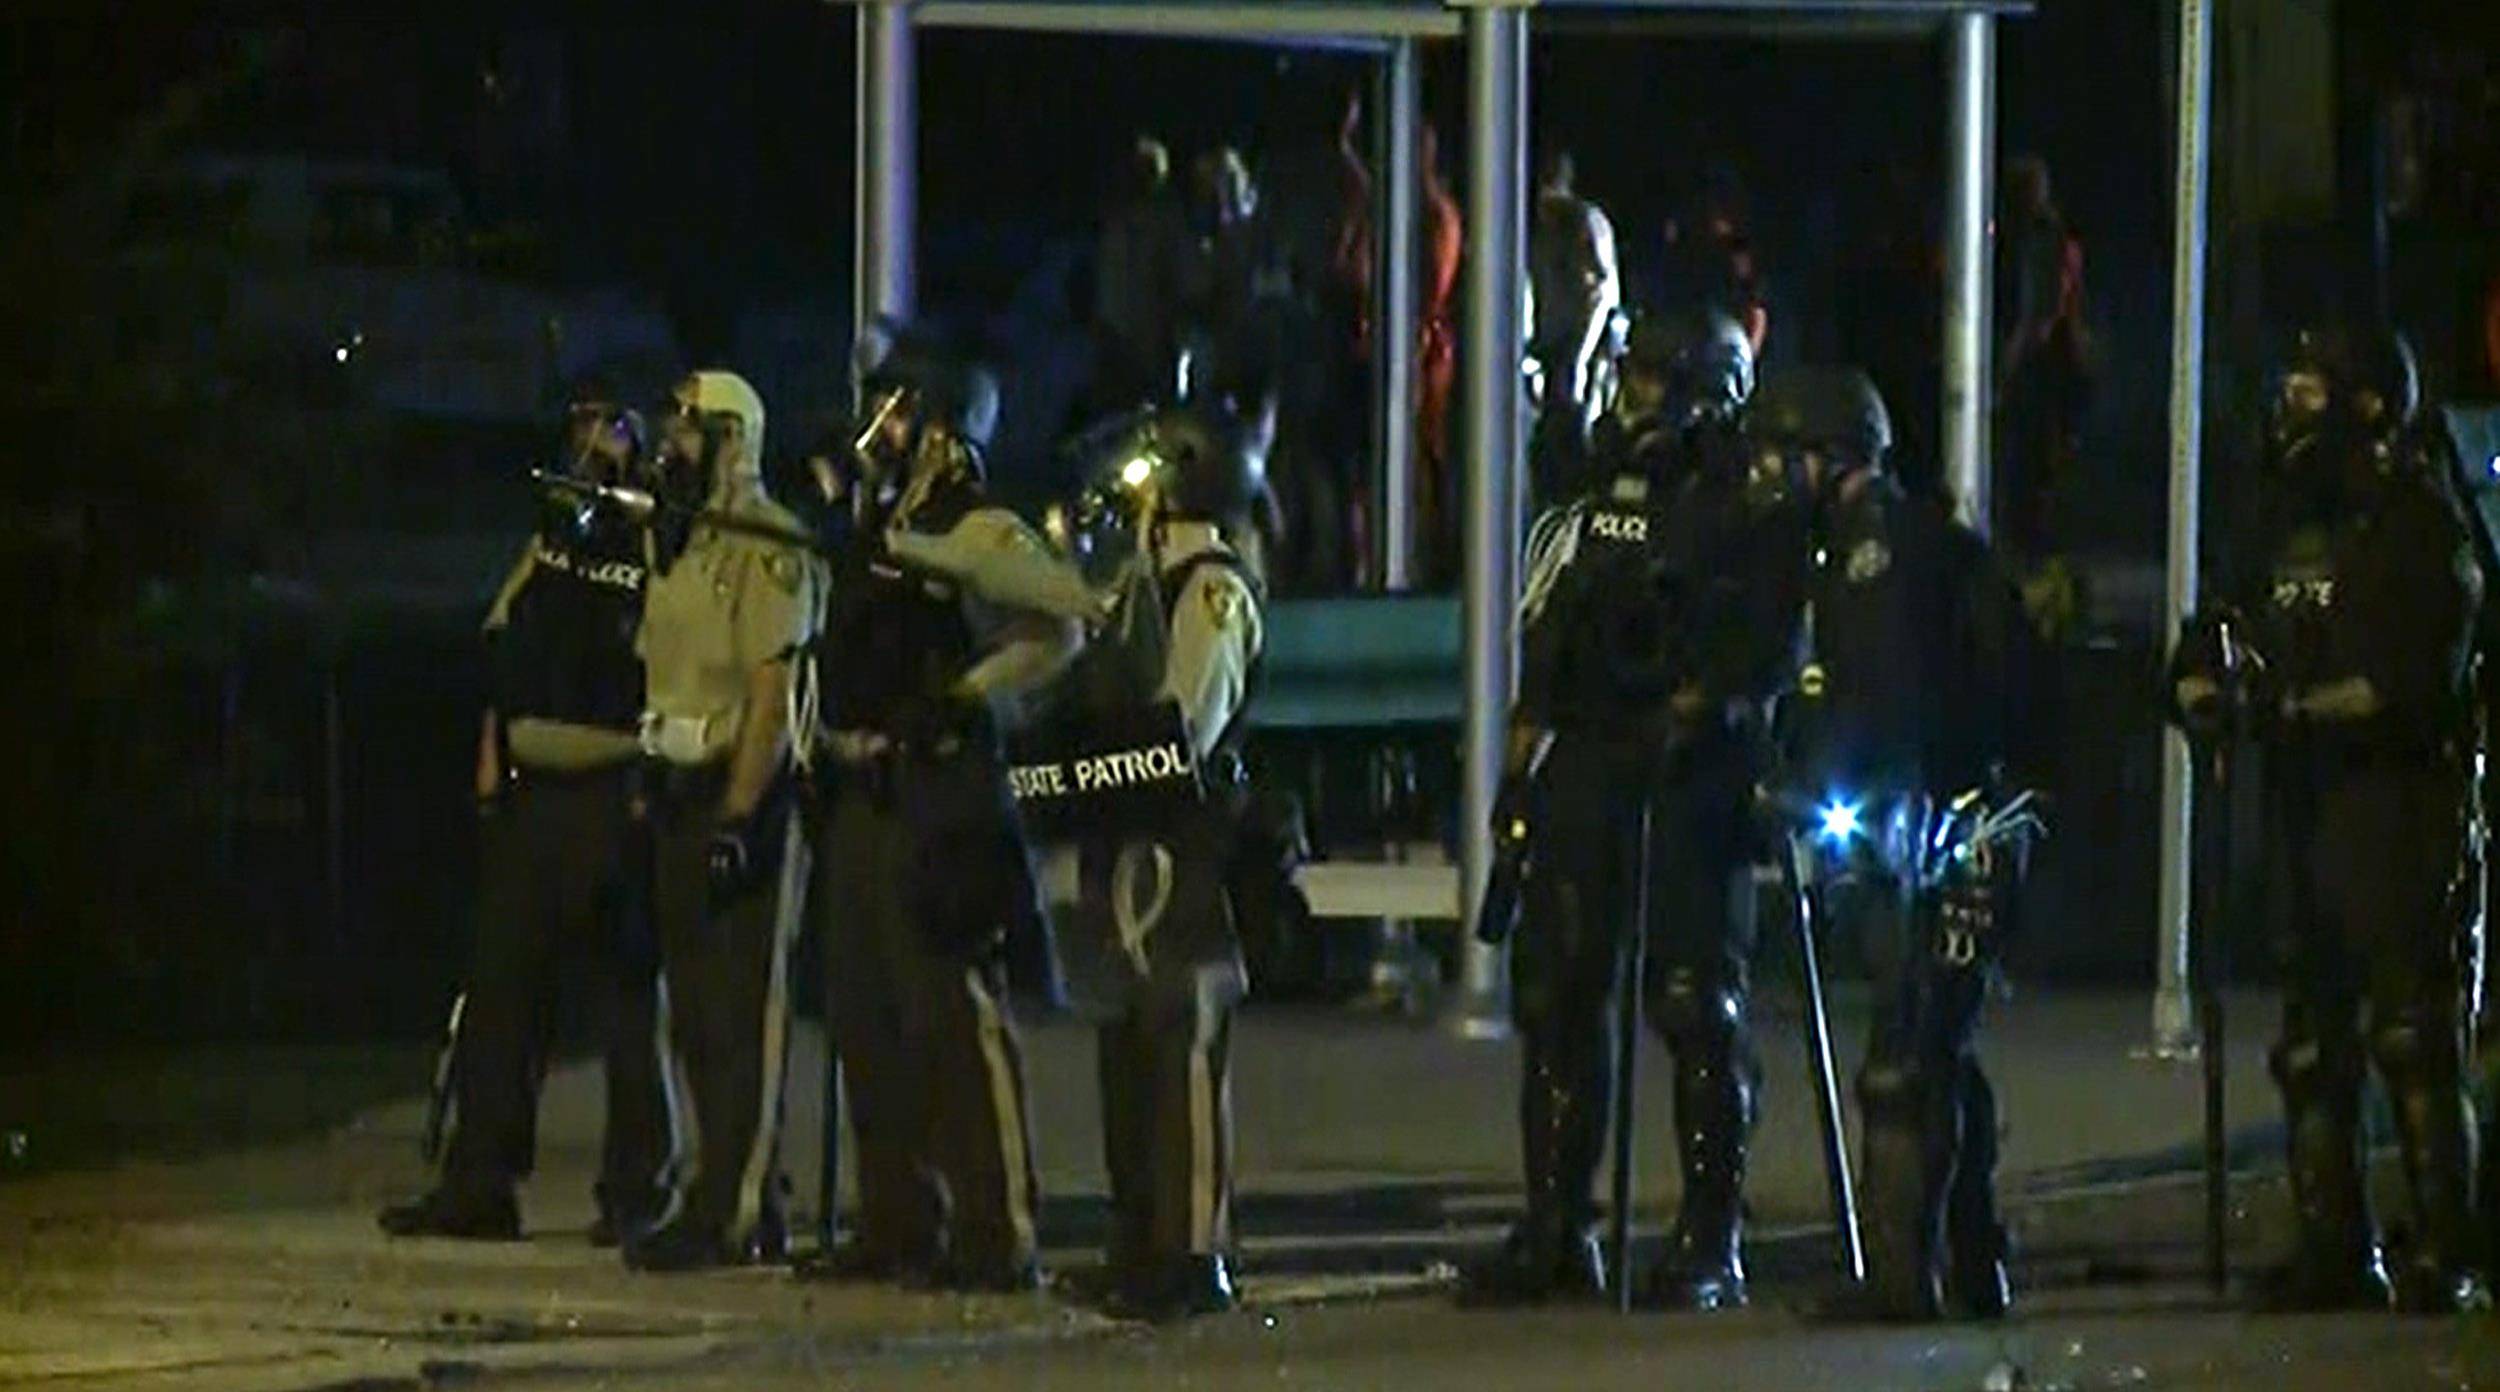 Image: Police in riot gear stand on a street in Ferguson, Mo., as people continued to react to the death of 18-year-old Michael Brown